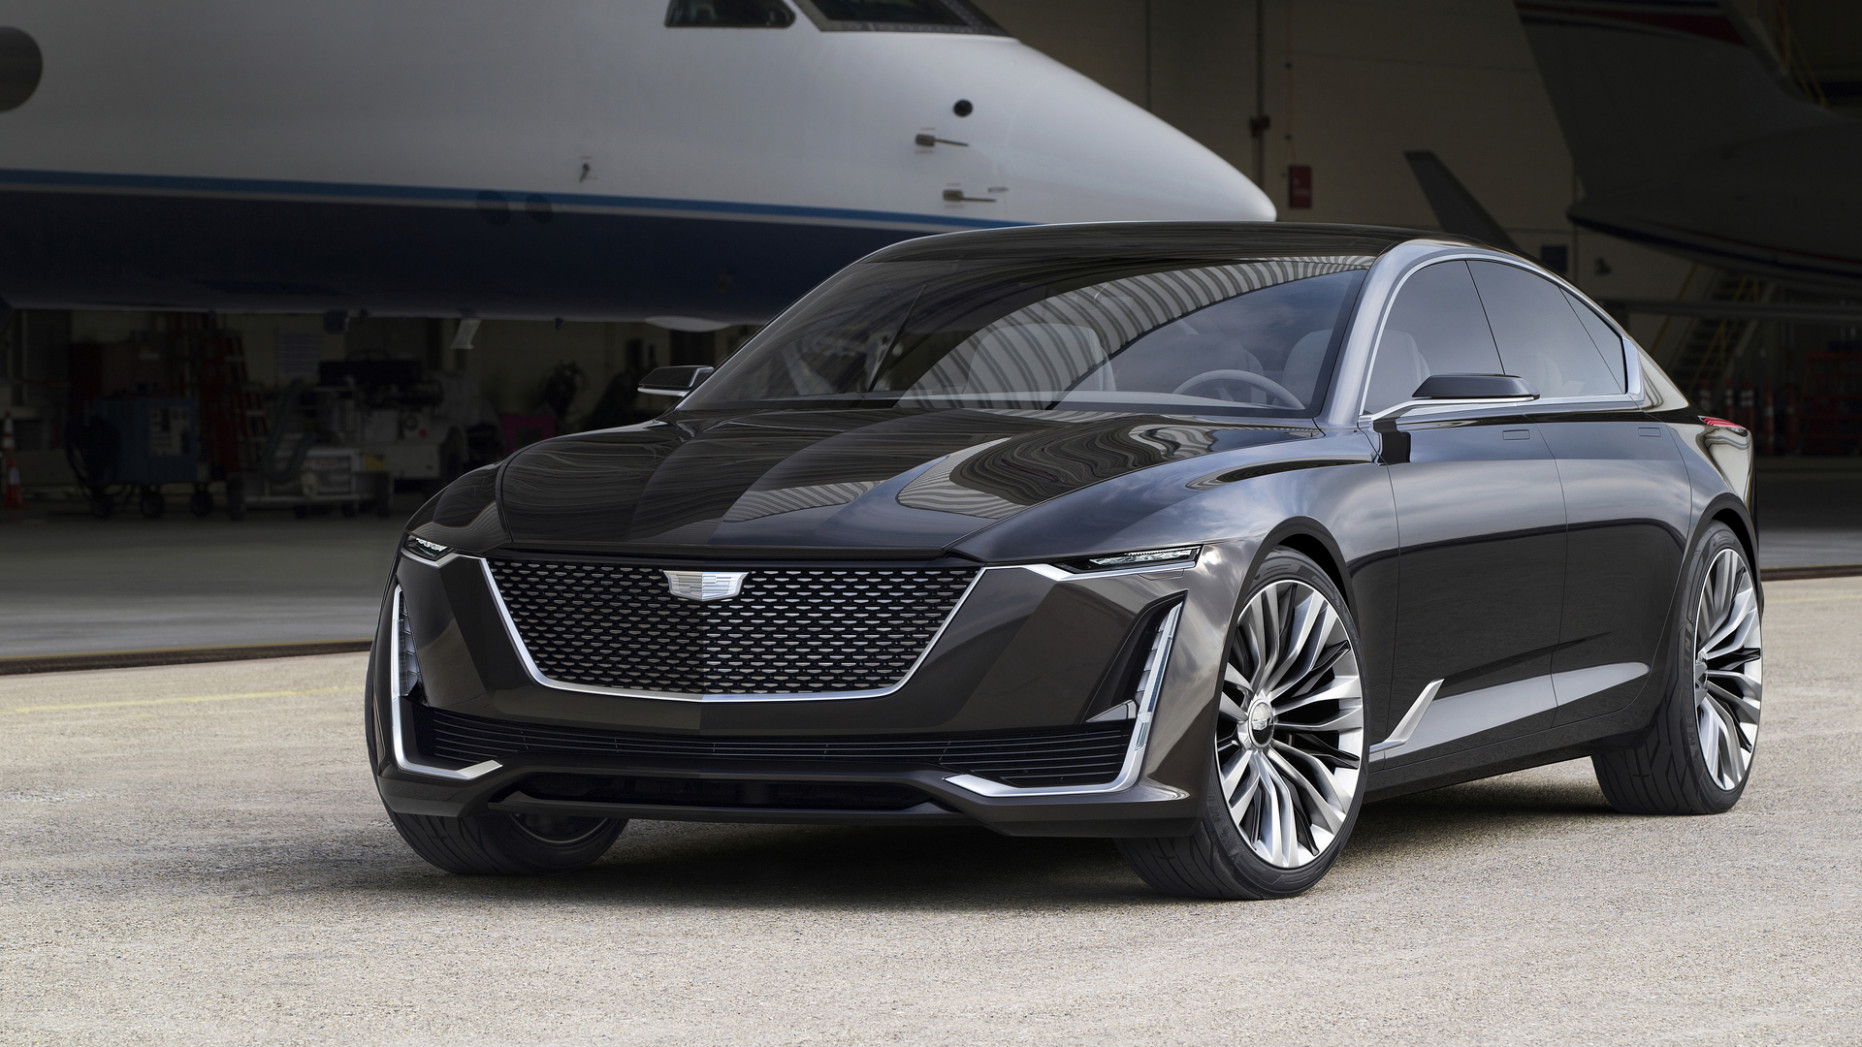 New Concept New Cadillac Sedans For 2022